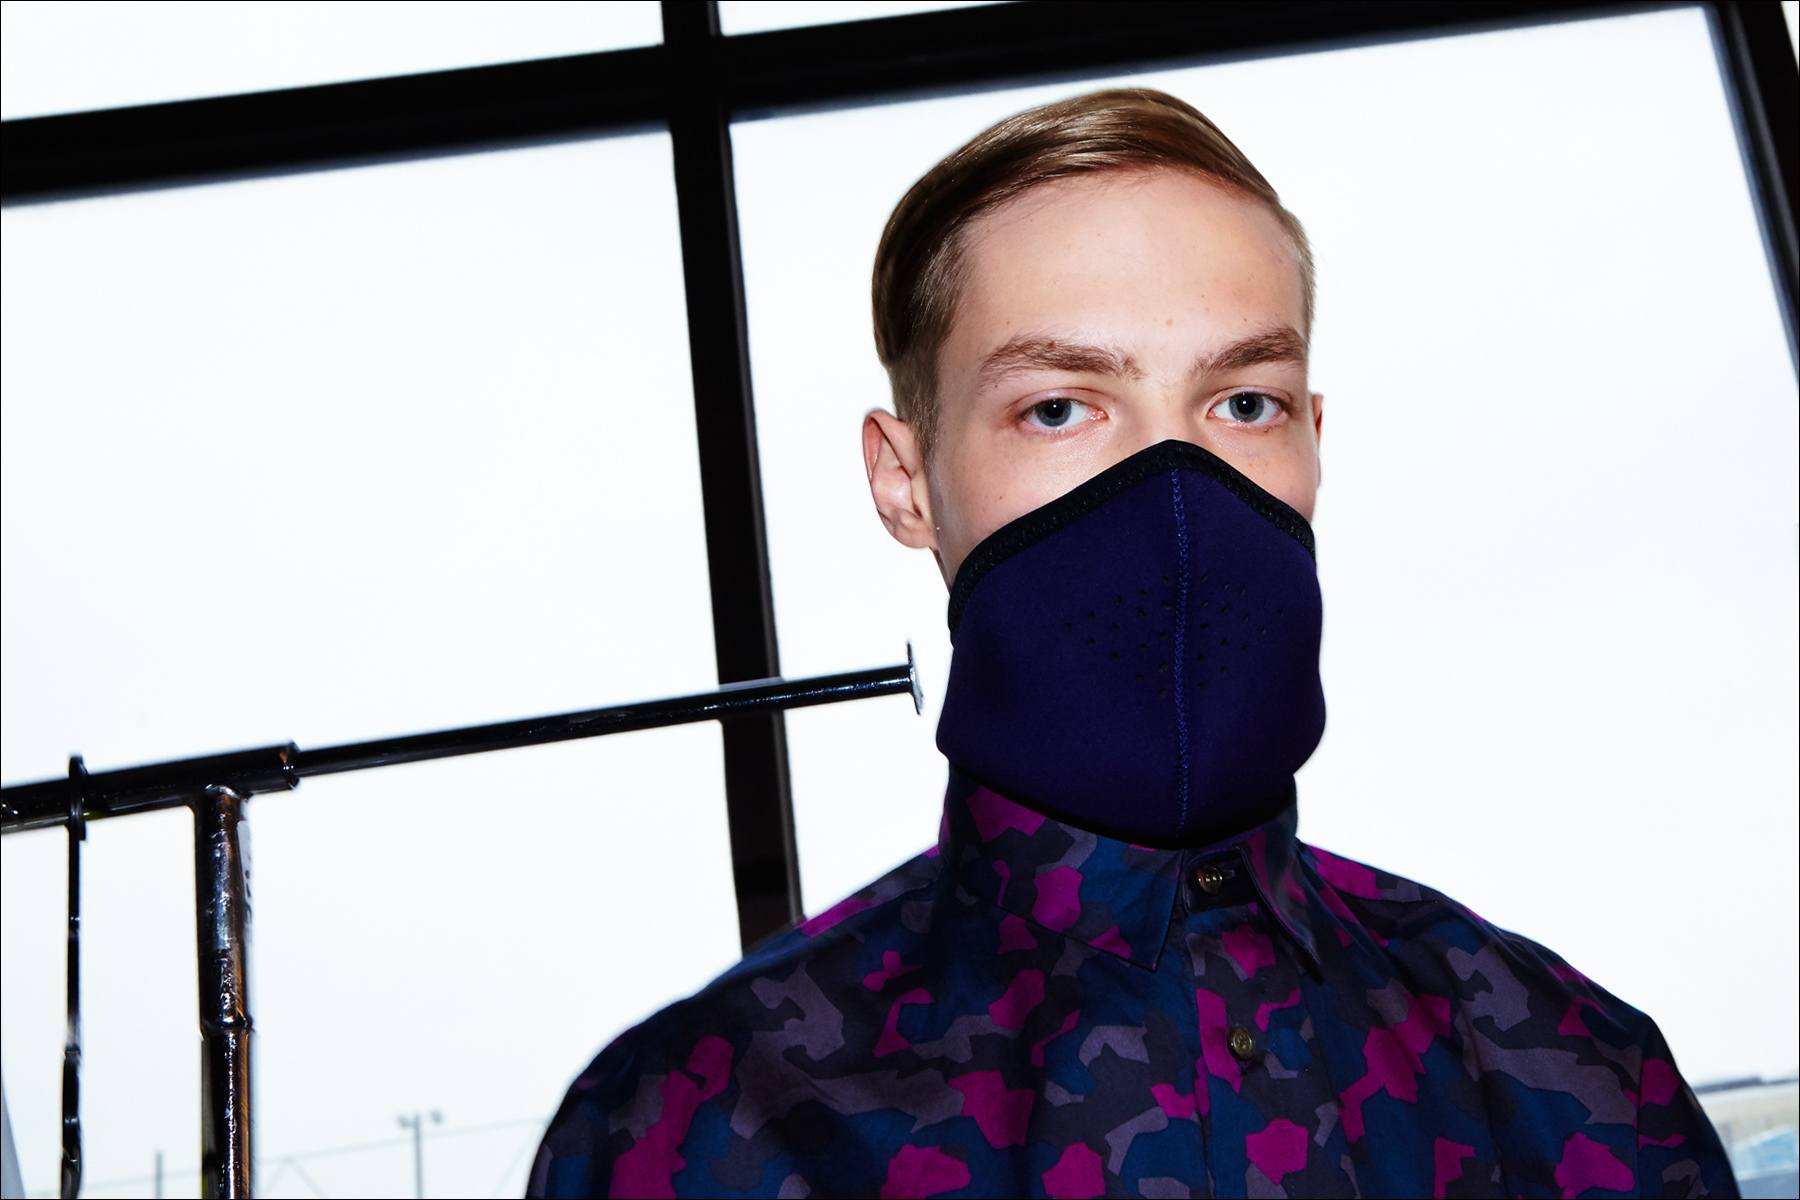 A male model photographed in a face mask and camo shirt, backstage at Robert Geller A/W17 menswear show. Photography by Alexander Thompson for Ponyboy magazine New York.